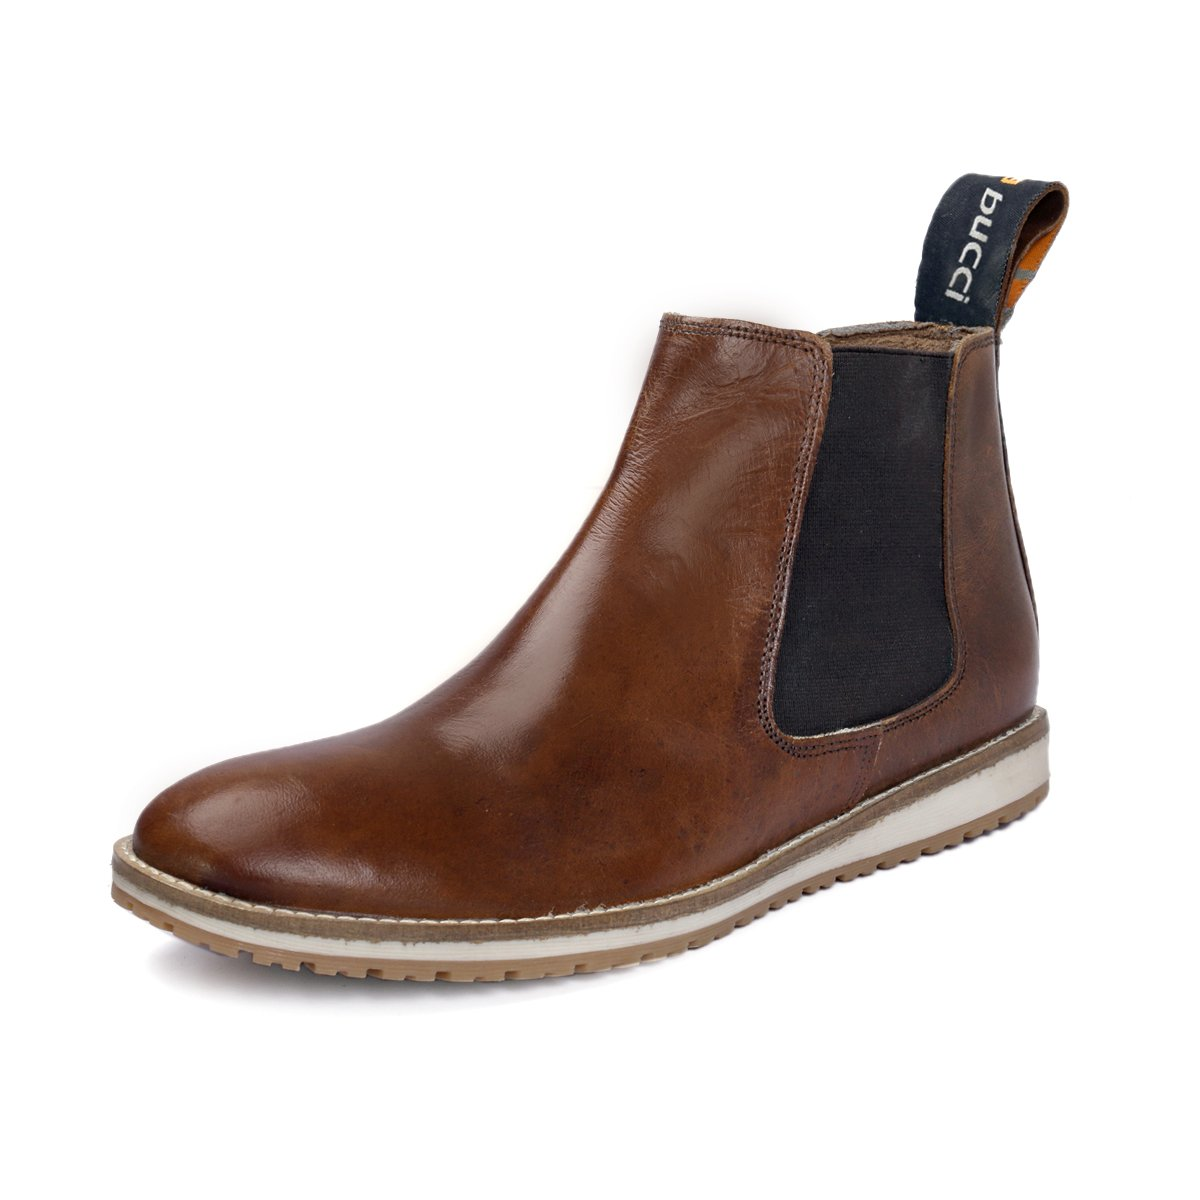 Bacca Bucci Leather Handmade Chelsea Boots